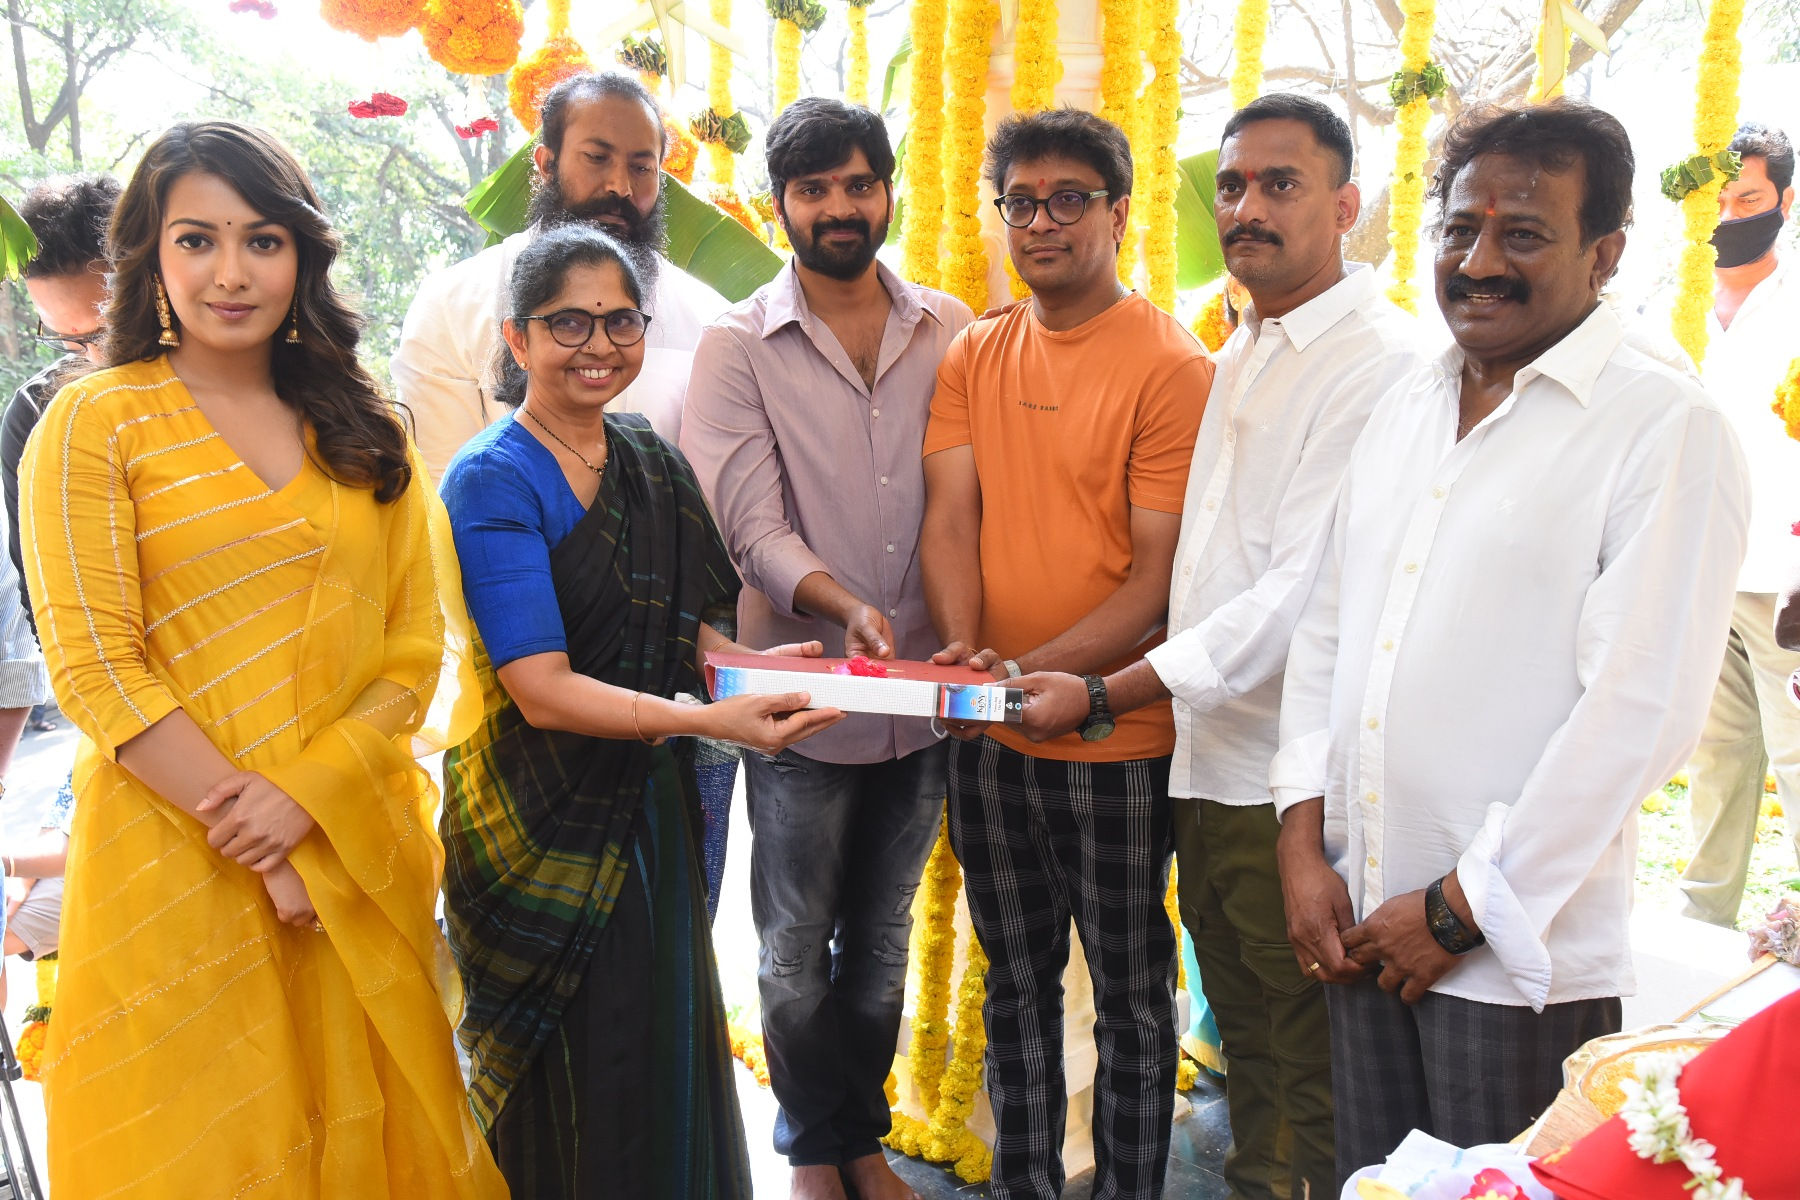 Rama Rajamouli @ Sree Vishnu - Bhala Thandanana movie launch